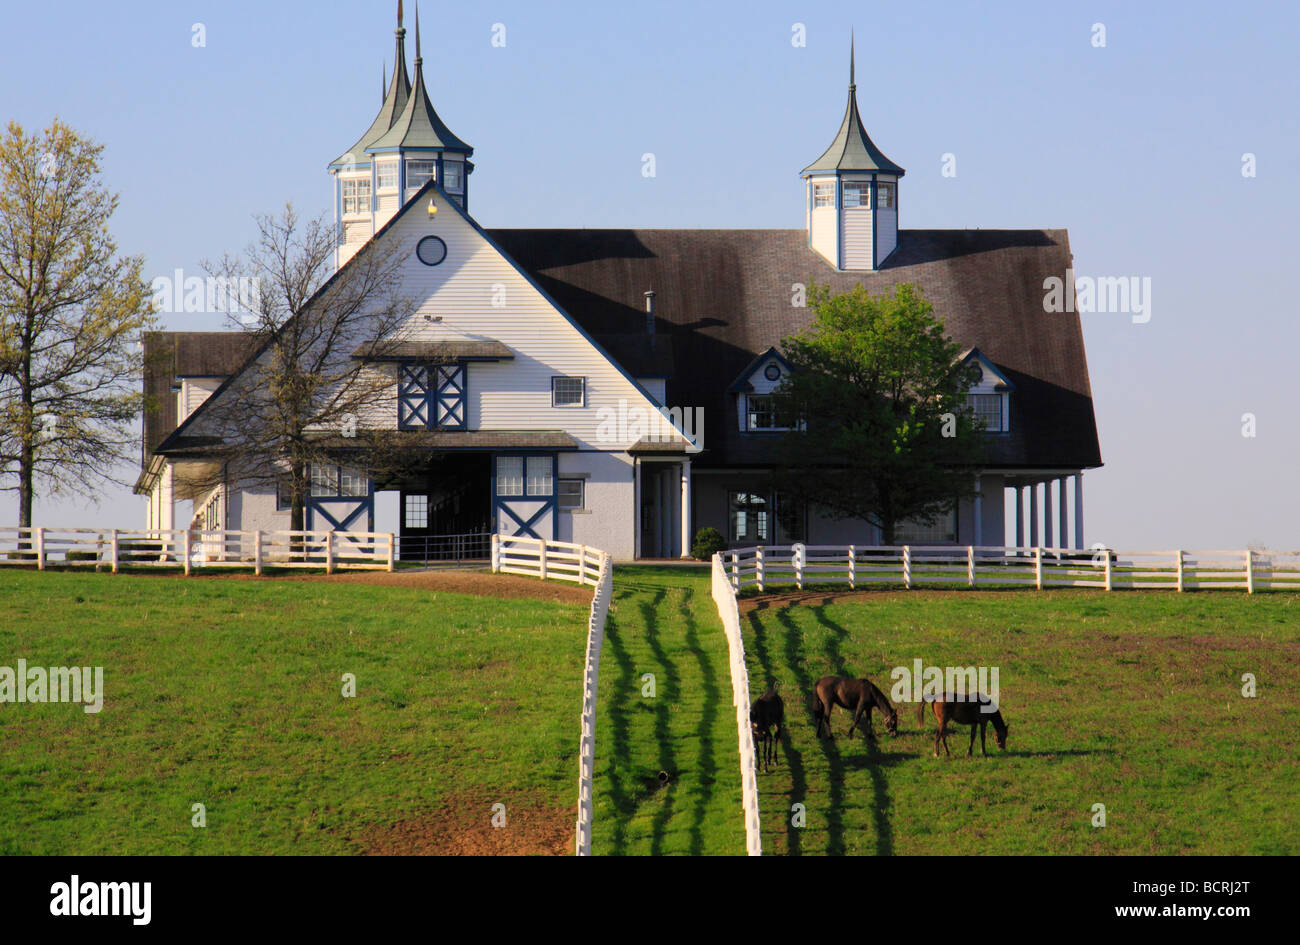 Thoroughbreds graze at Calumet Farm in Lexington Kentucky - Stock Image